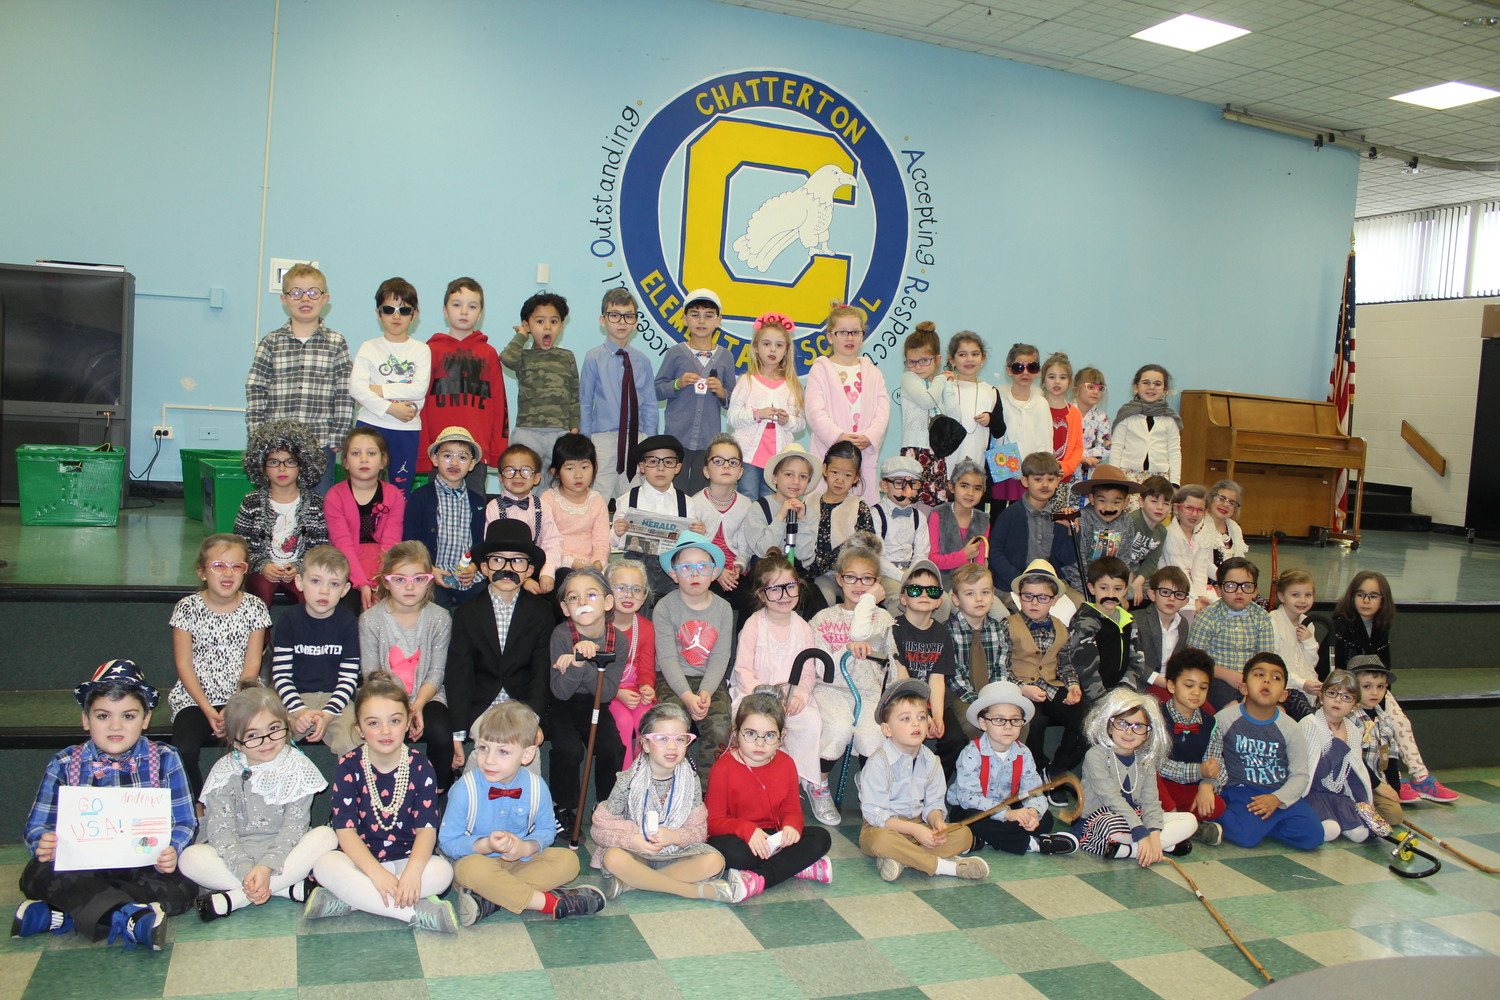 Chatterton kindergartners came to school dressed as centenarians in celebration of their 100th day of school.